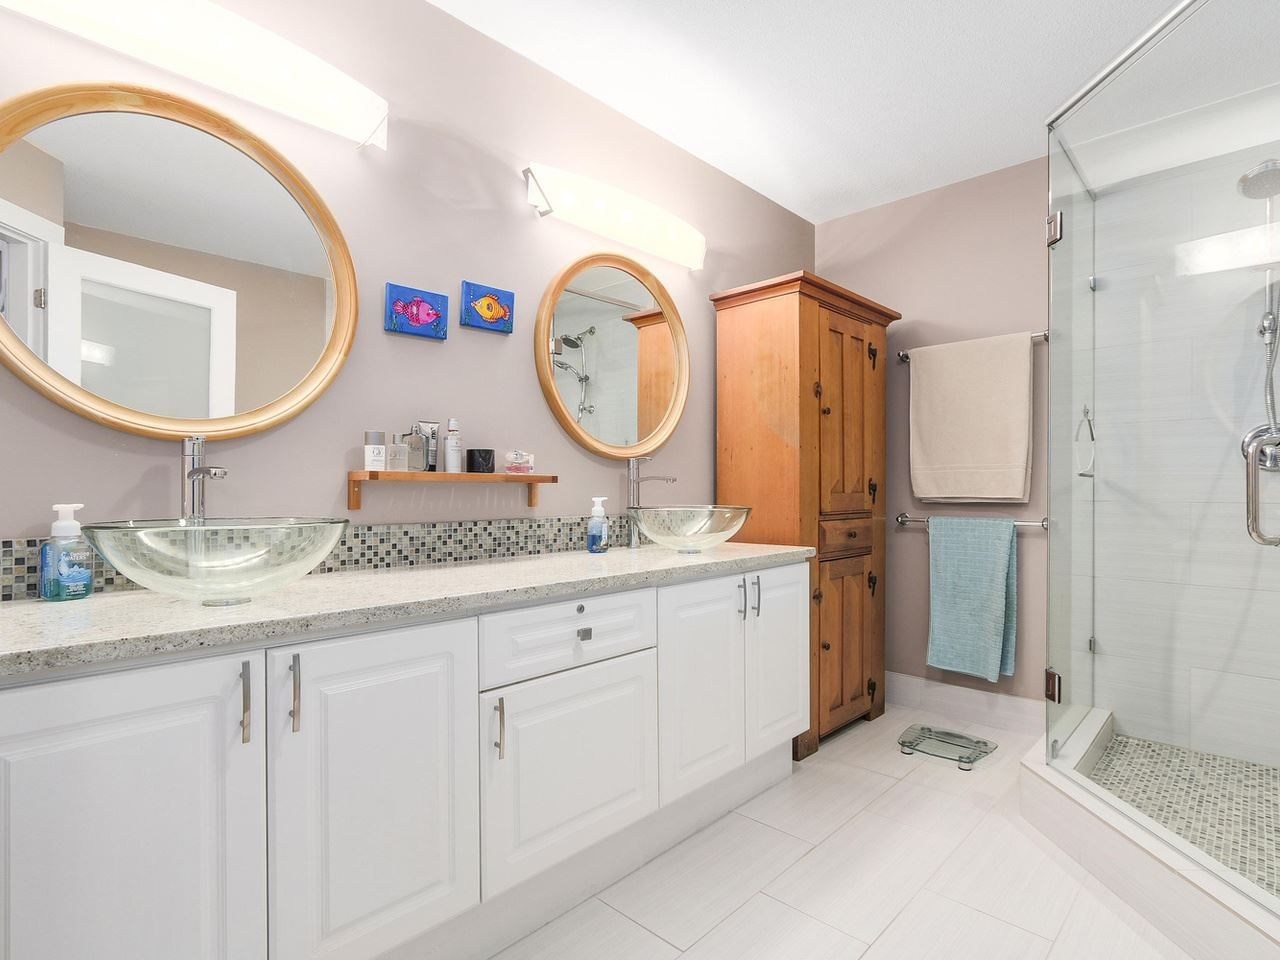 """Photo 9: Photos: 72 9208 208 Street in Langley: Walnut Grove Townhouse for sale in """"CHURCHILL PARK"""" : MLS®# R2155500"""